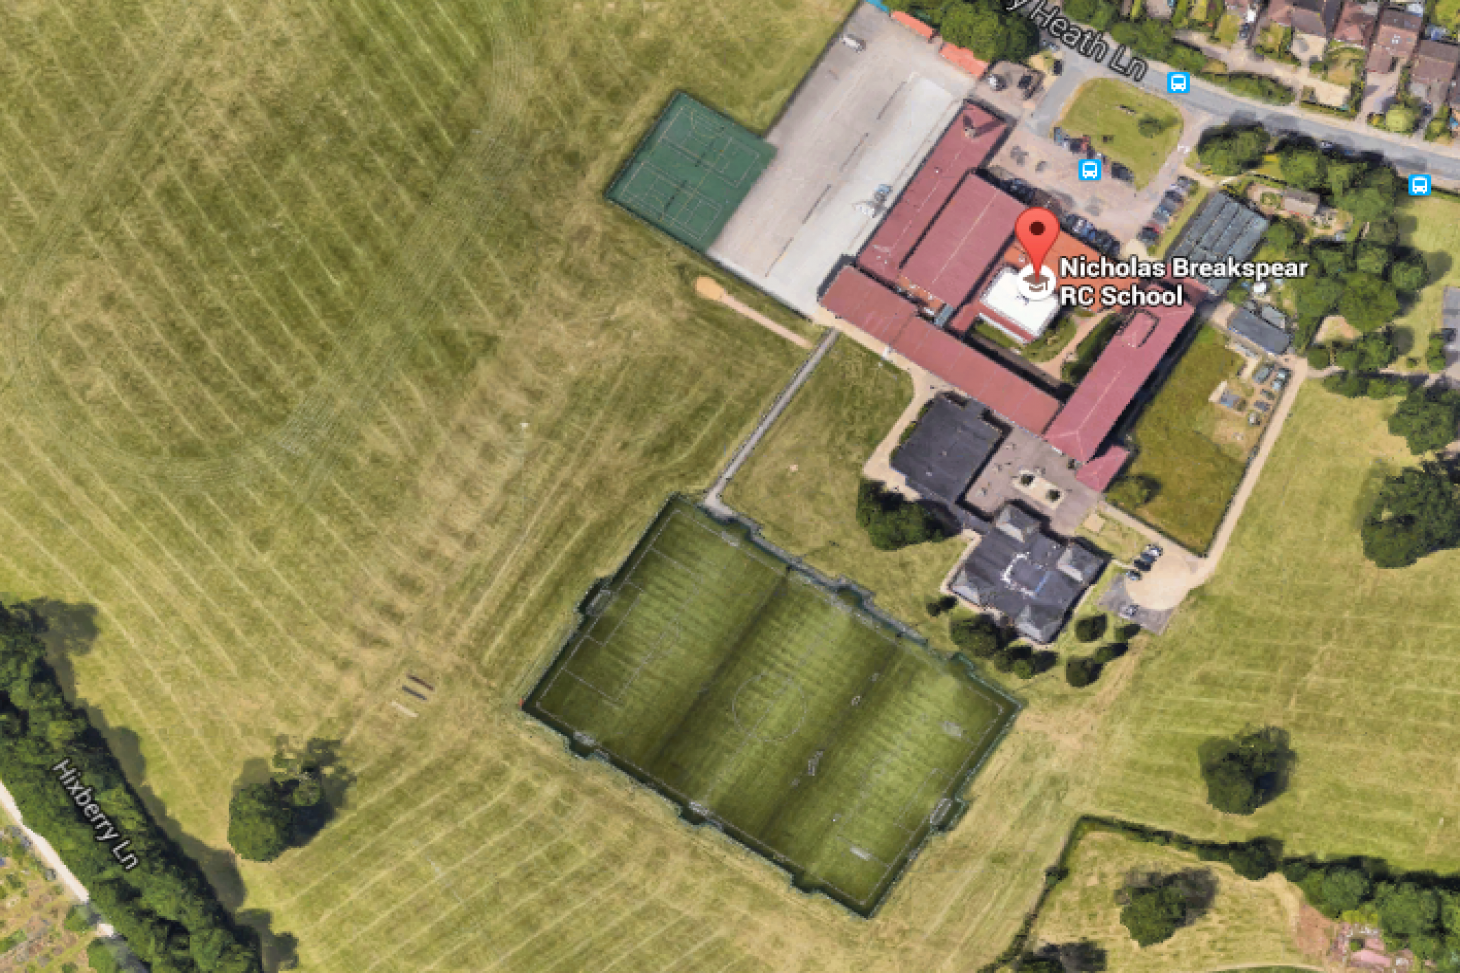 Nicholas Breakspear RC School 11 a side | 3G Astroturf football pitch